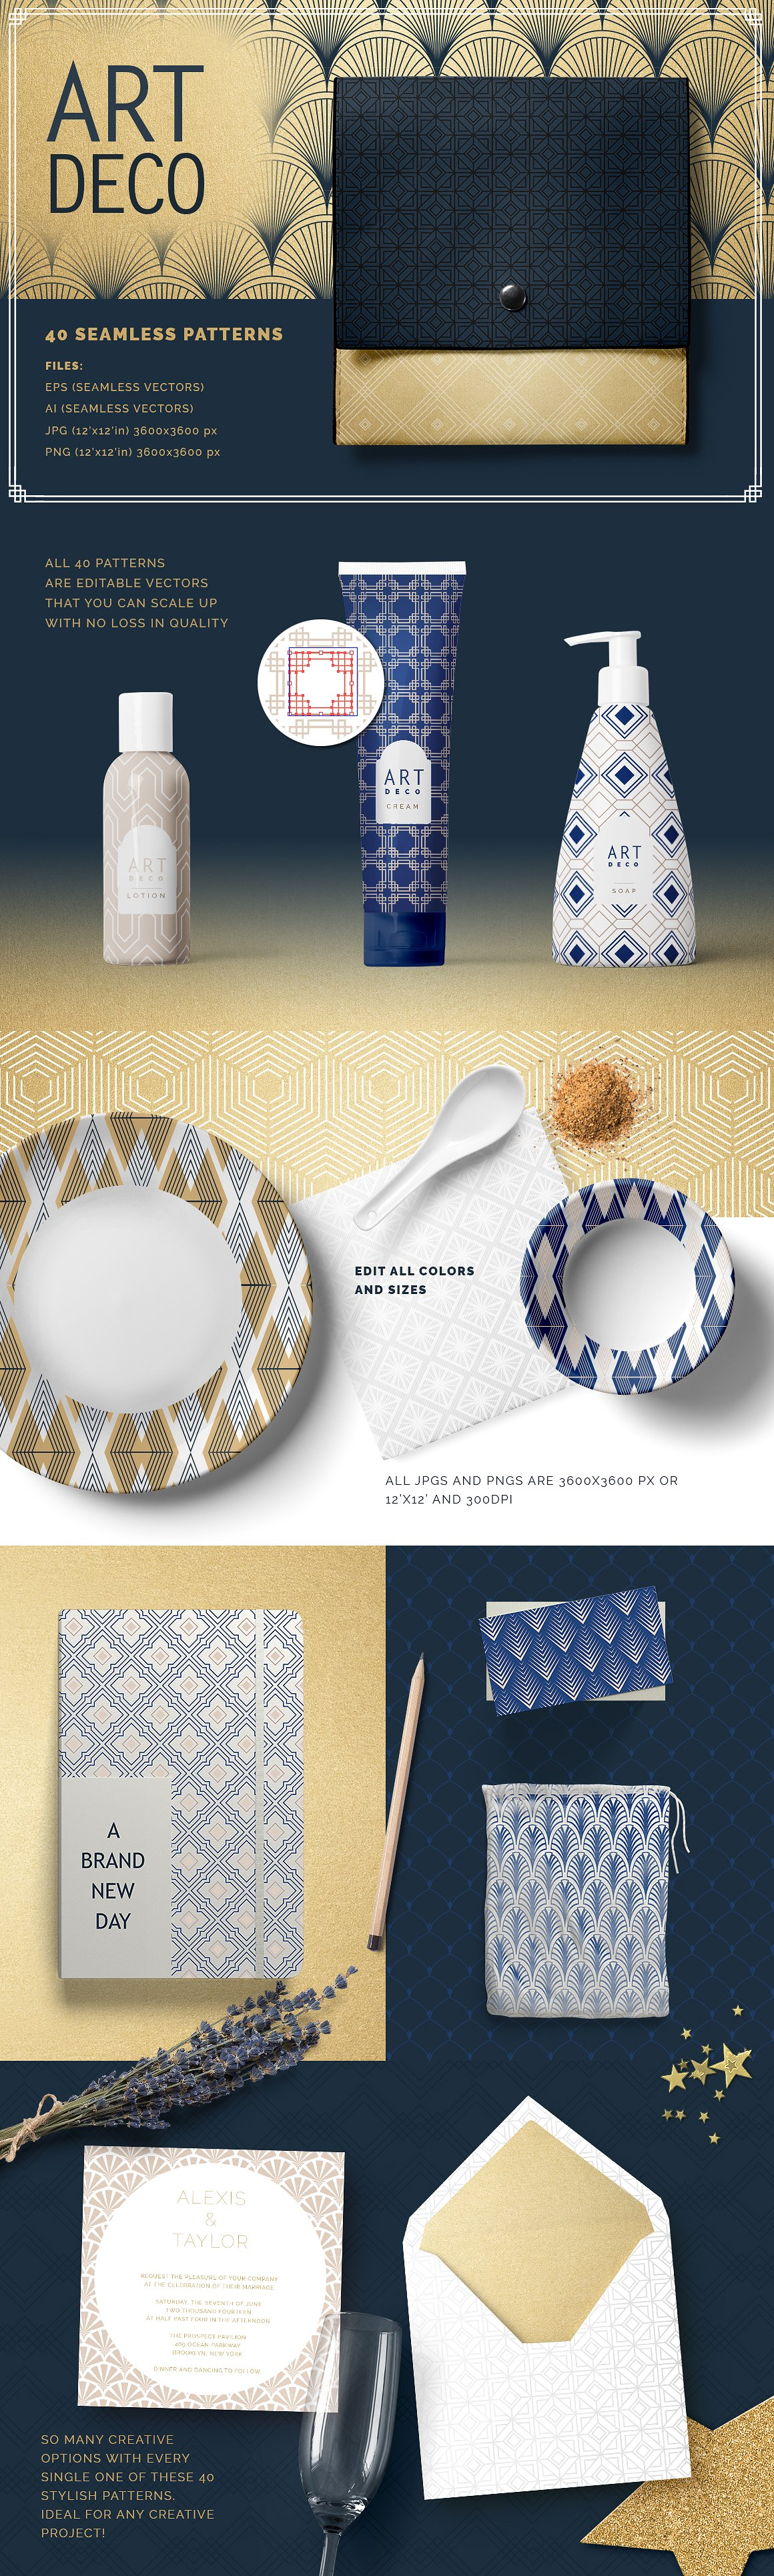 The All-Purpose Textures and Patterns Collection